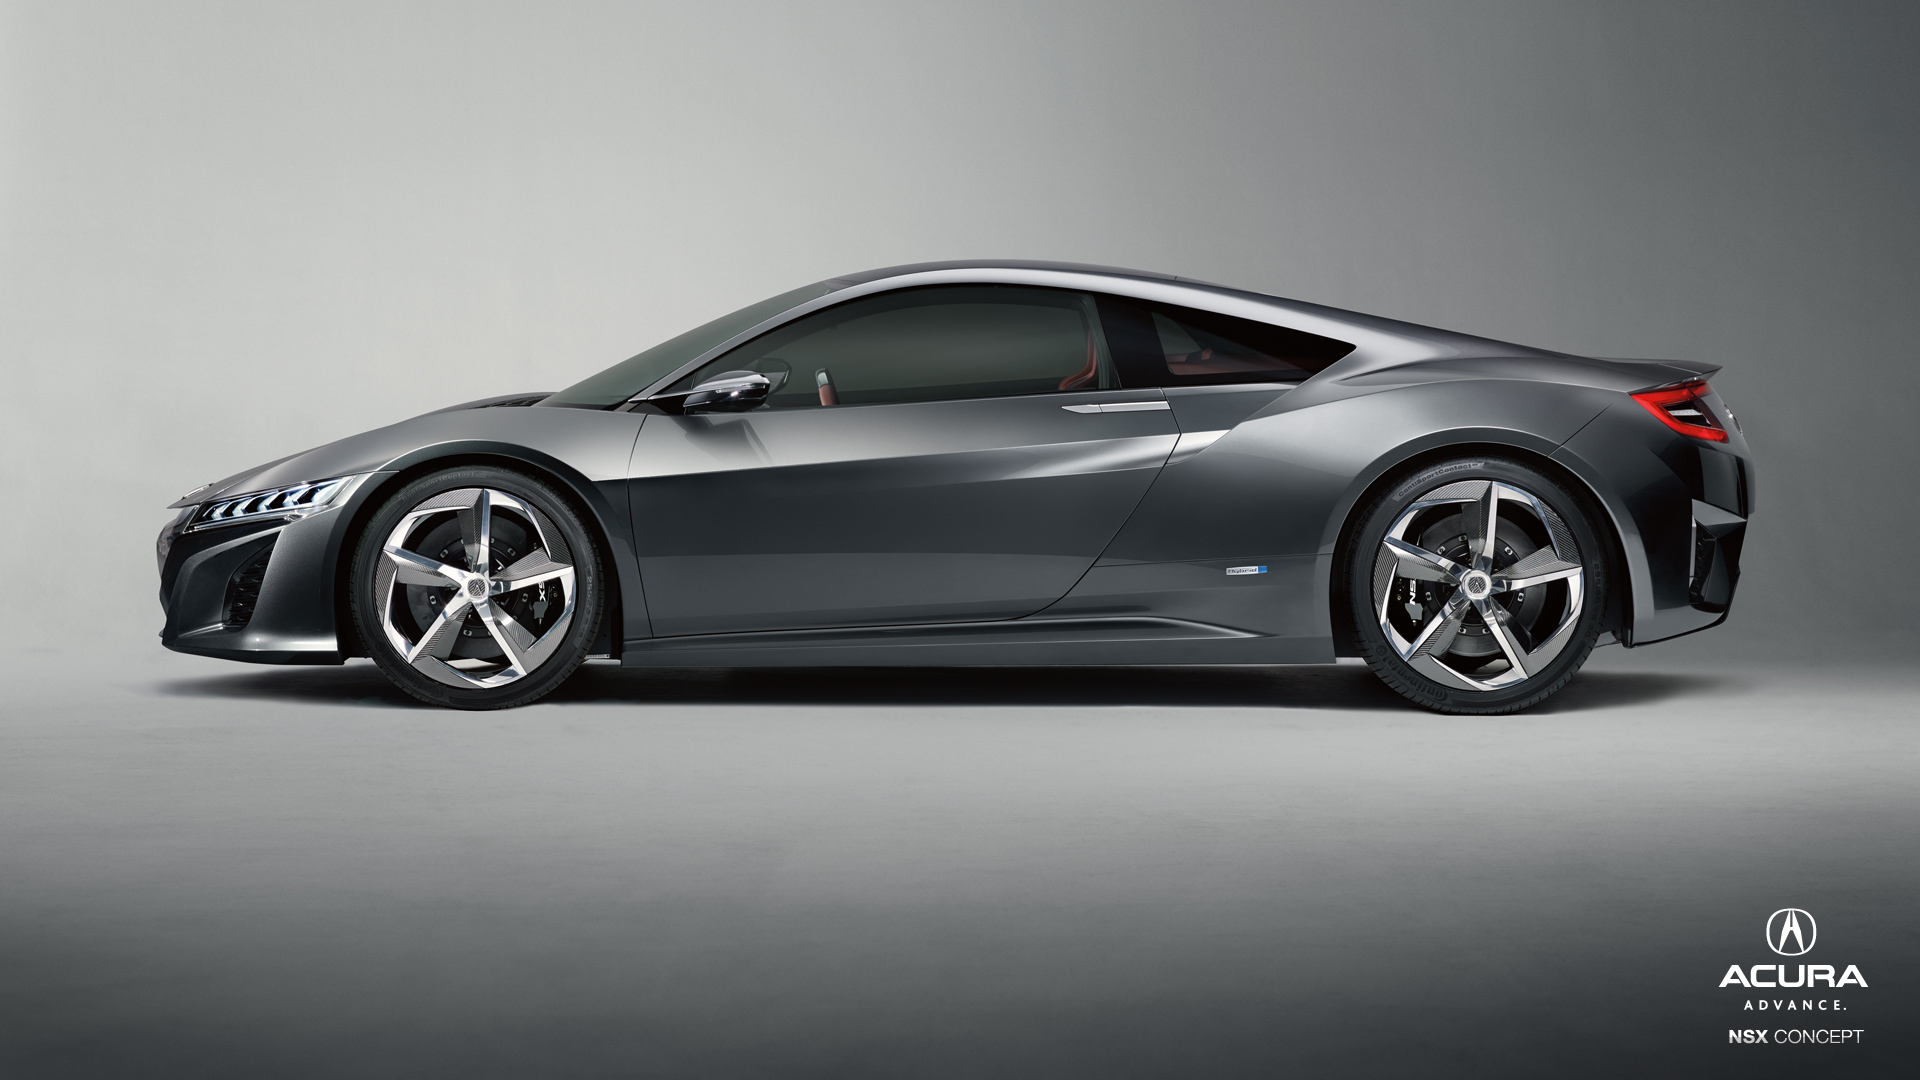 Acura-NSX-Acura-NSX-Concept-–-Top-Car-Magazine-wallpaper-wpc9001282